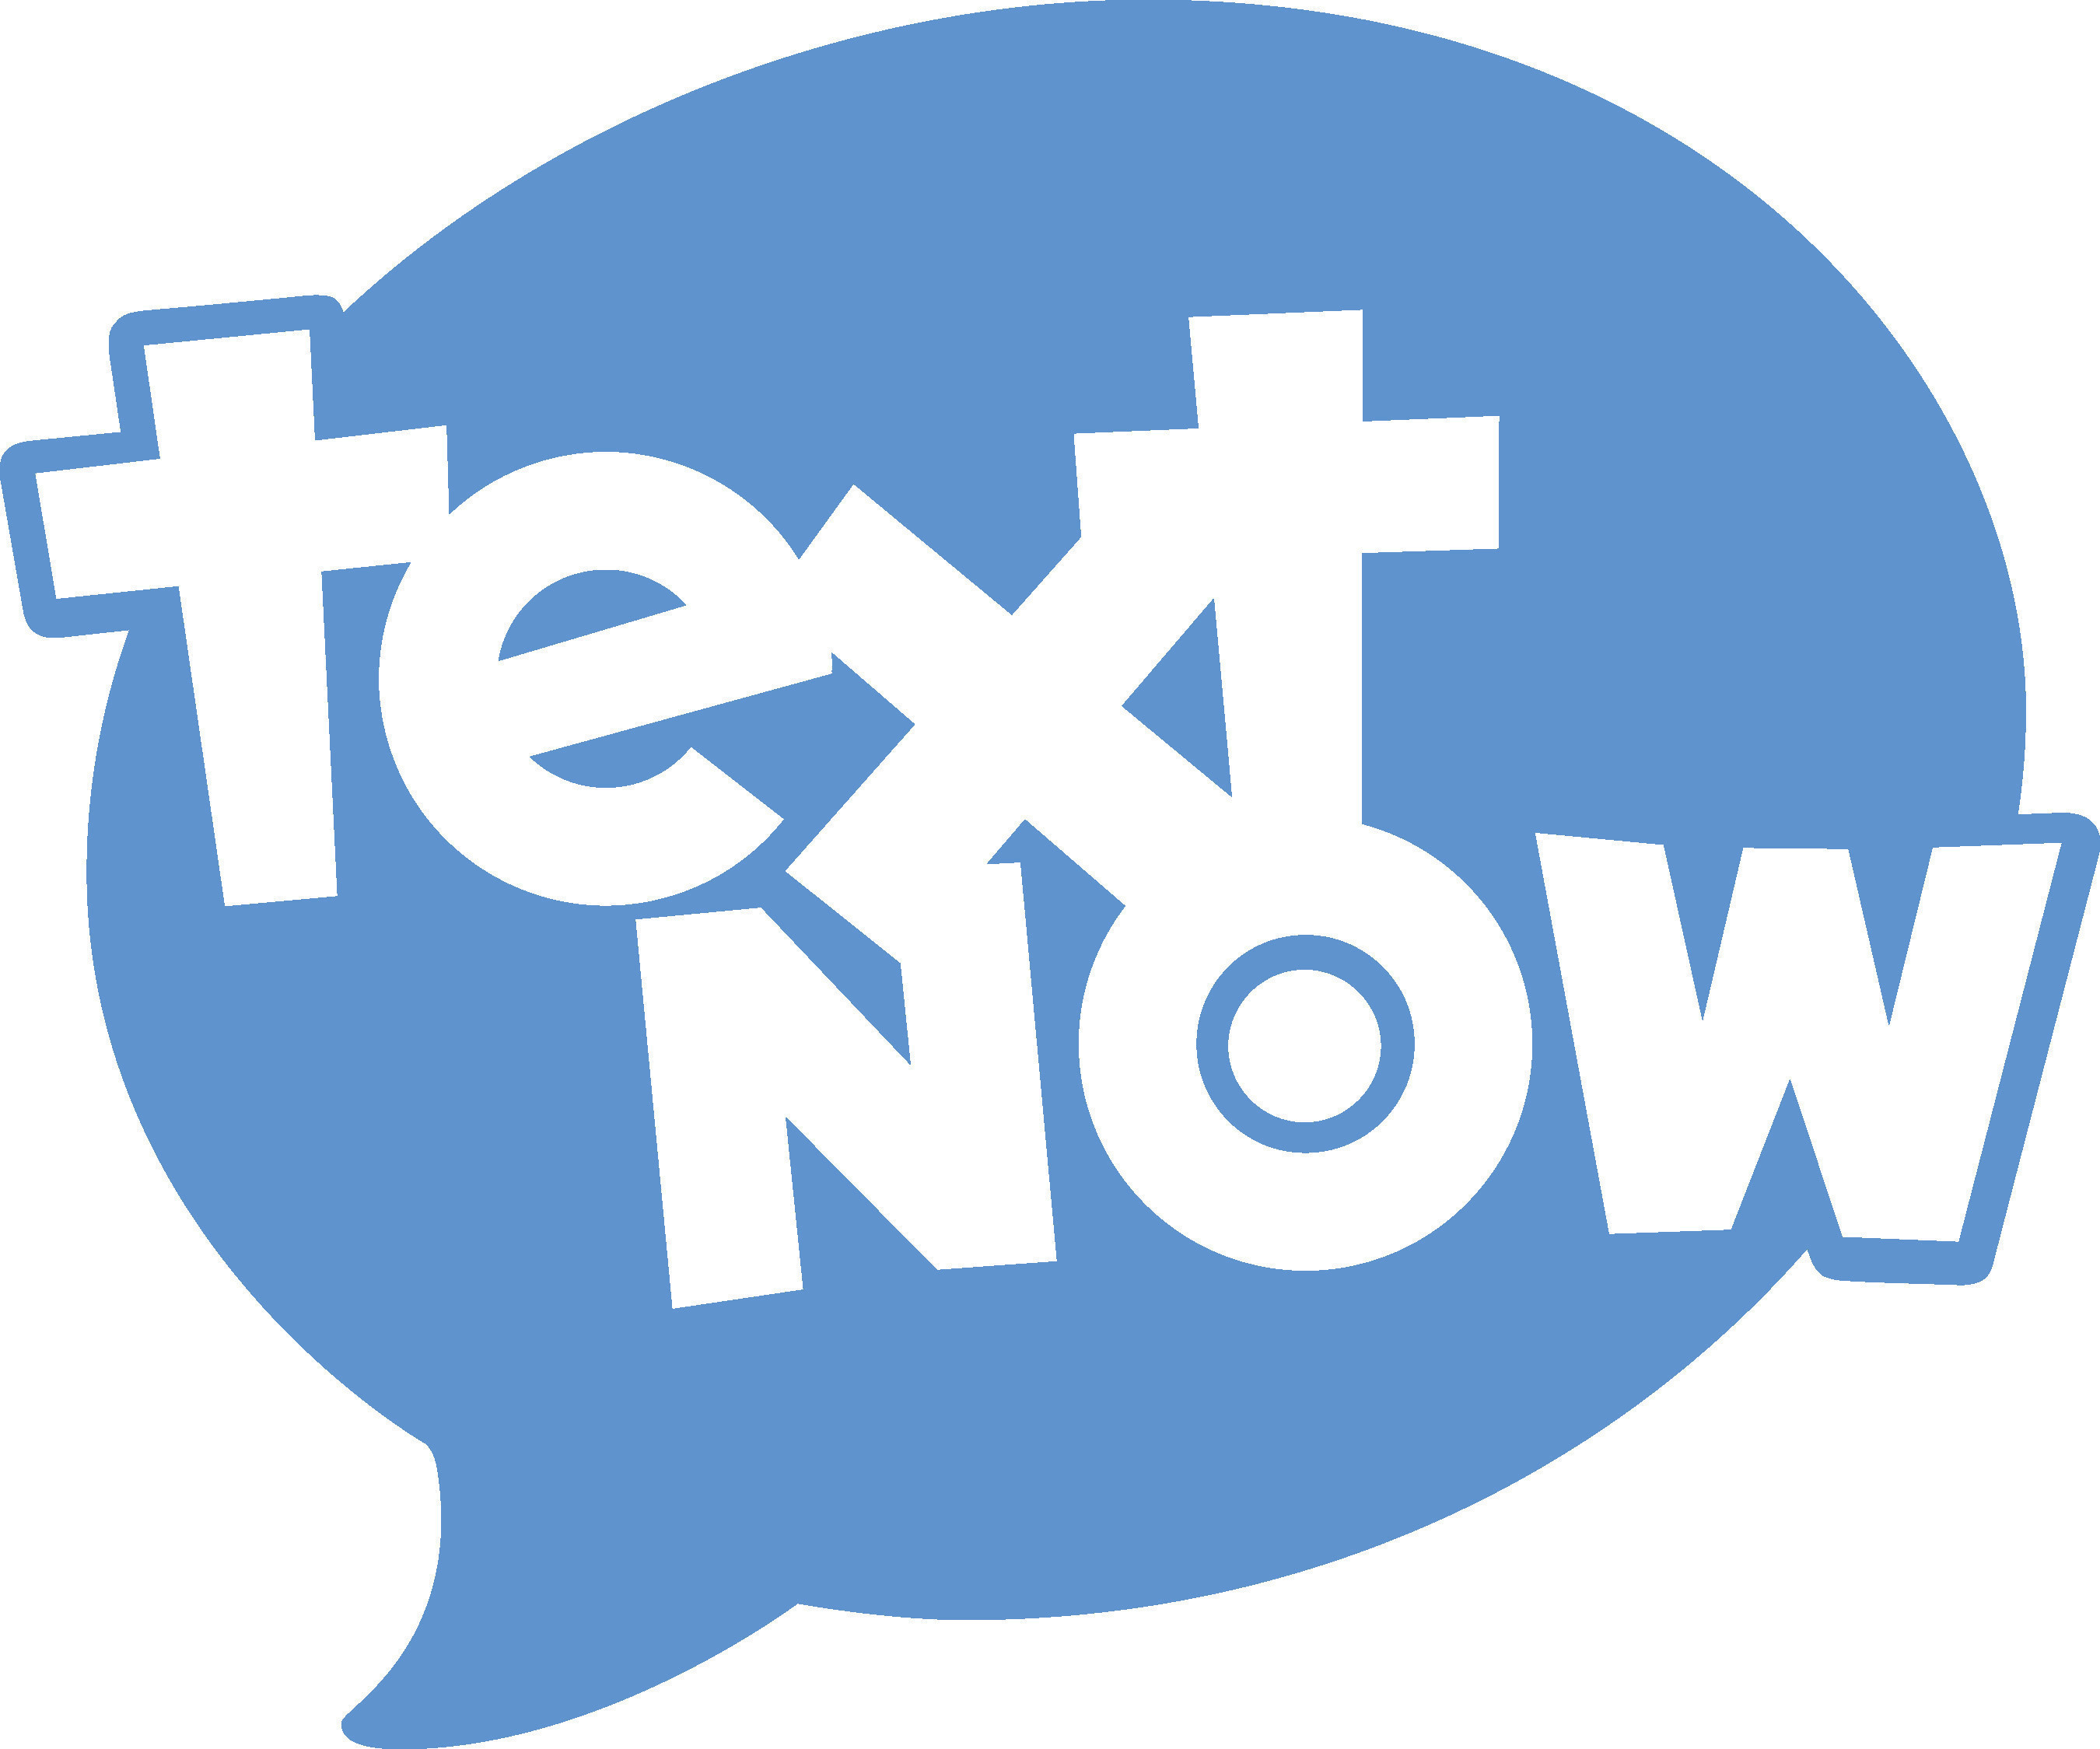 textnow free download latest version